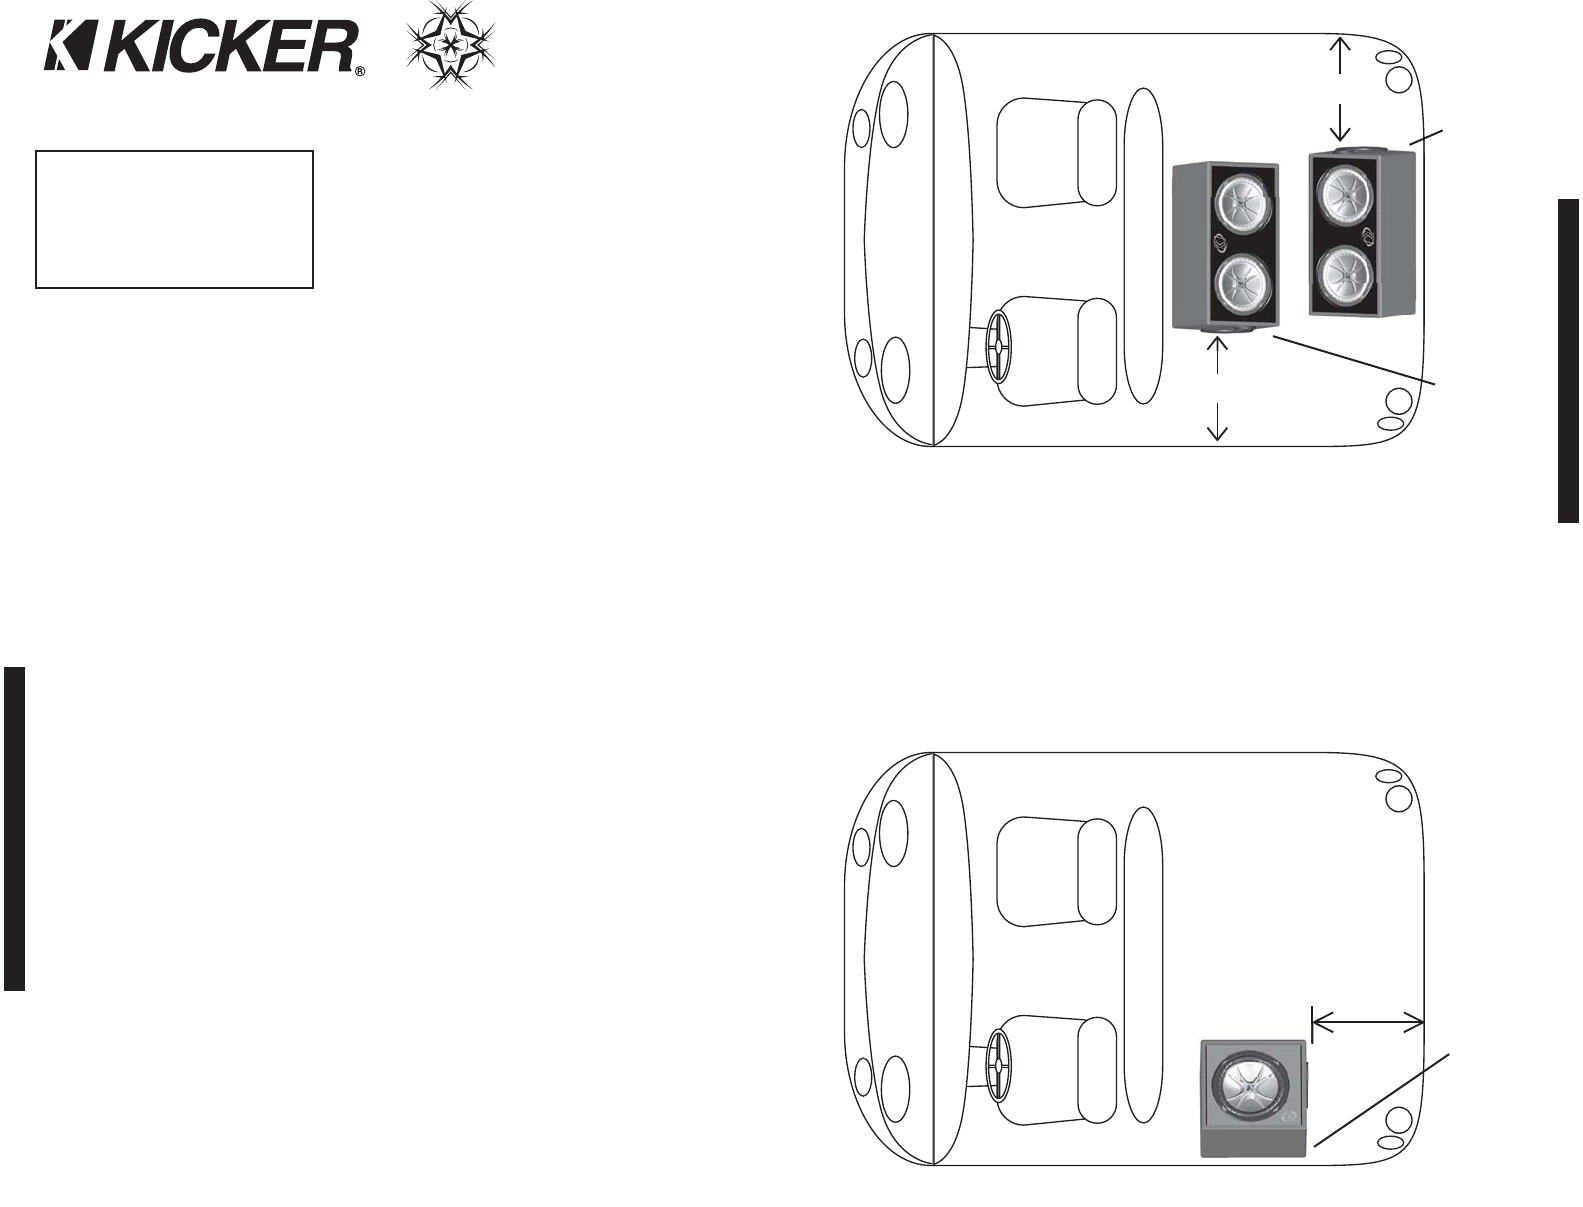 kicker solo baric l5 12 wiring diagram kicker kicker comp wiring diagram wiring diagram and hernes on kicker solo baric l5 12 wiring diagram